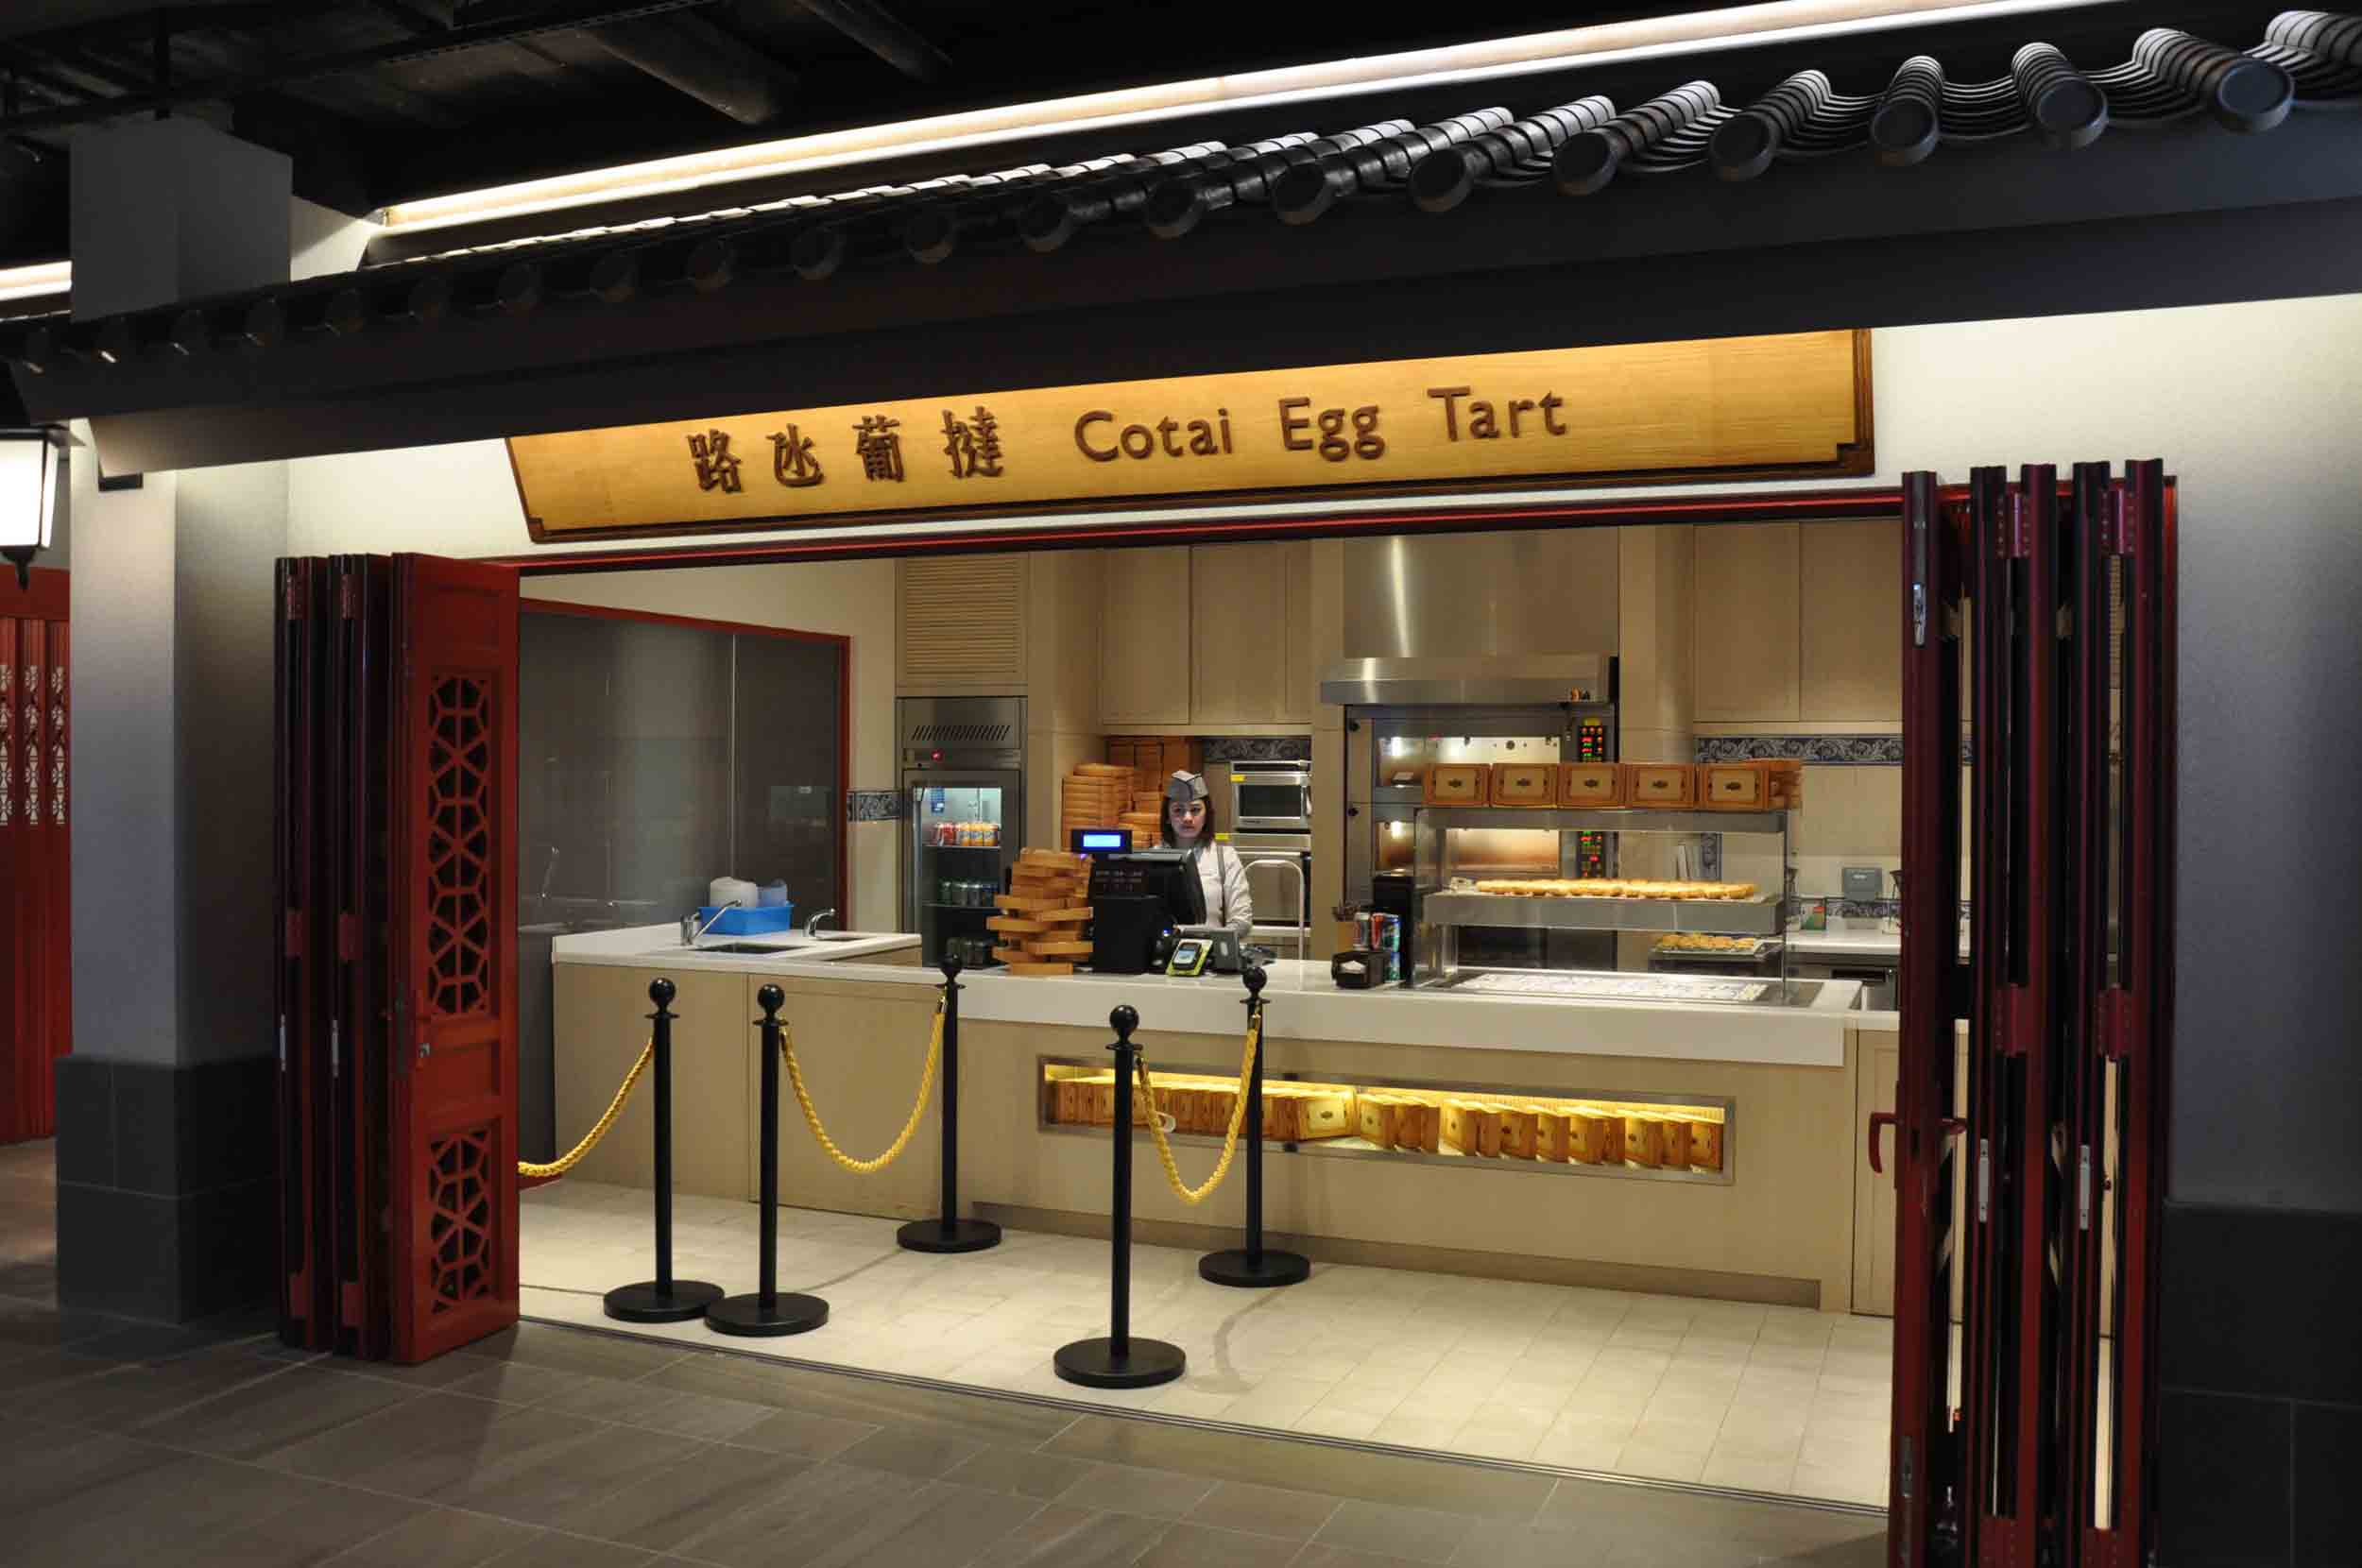 Studio City Macau Cotai Egg Tart